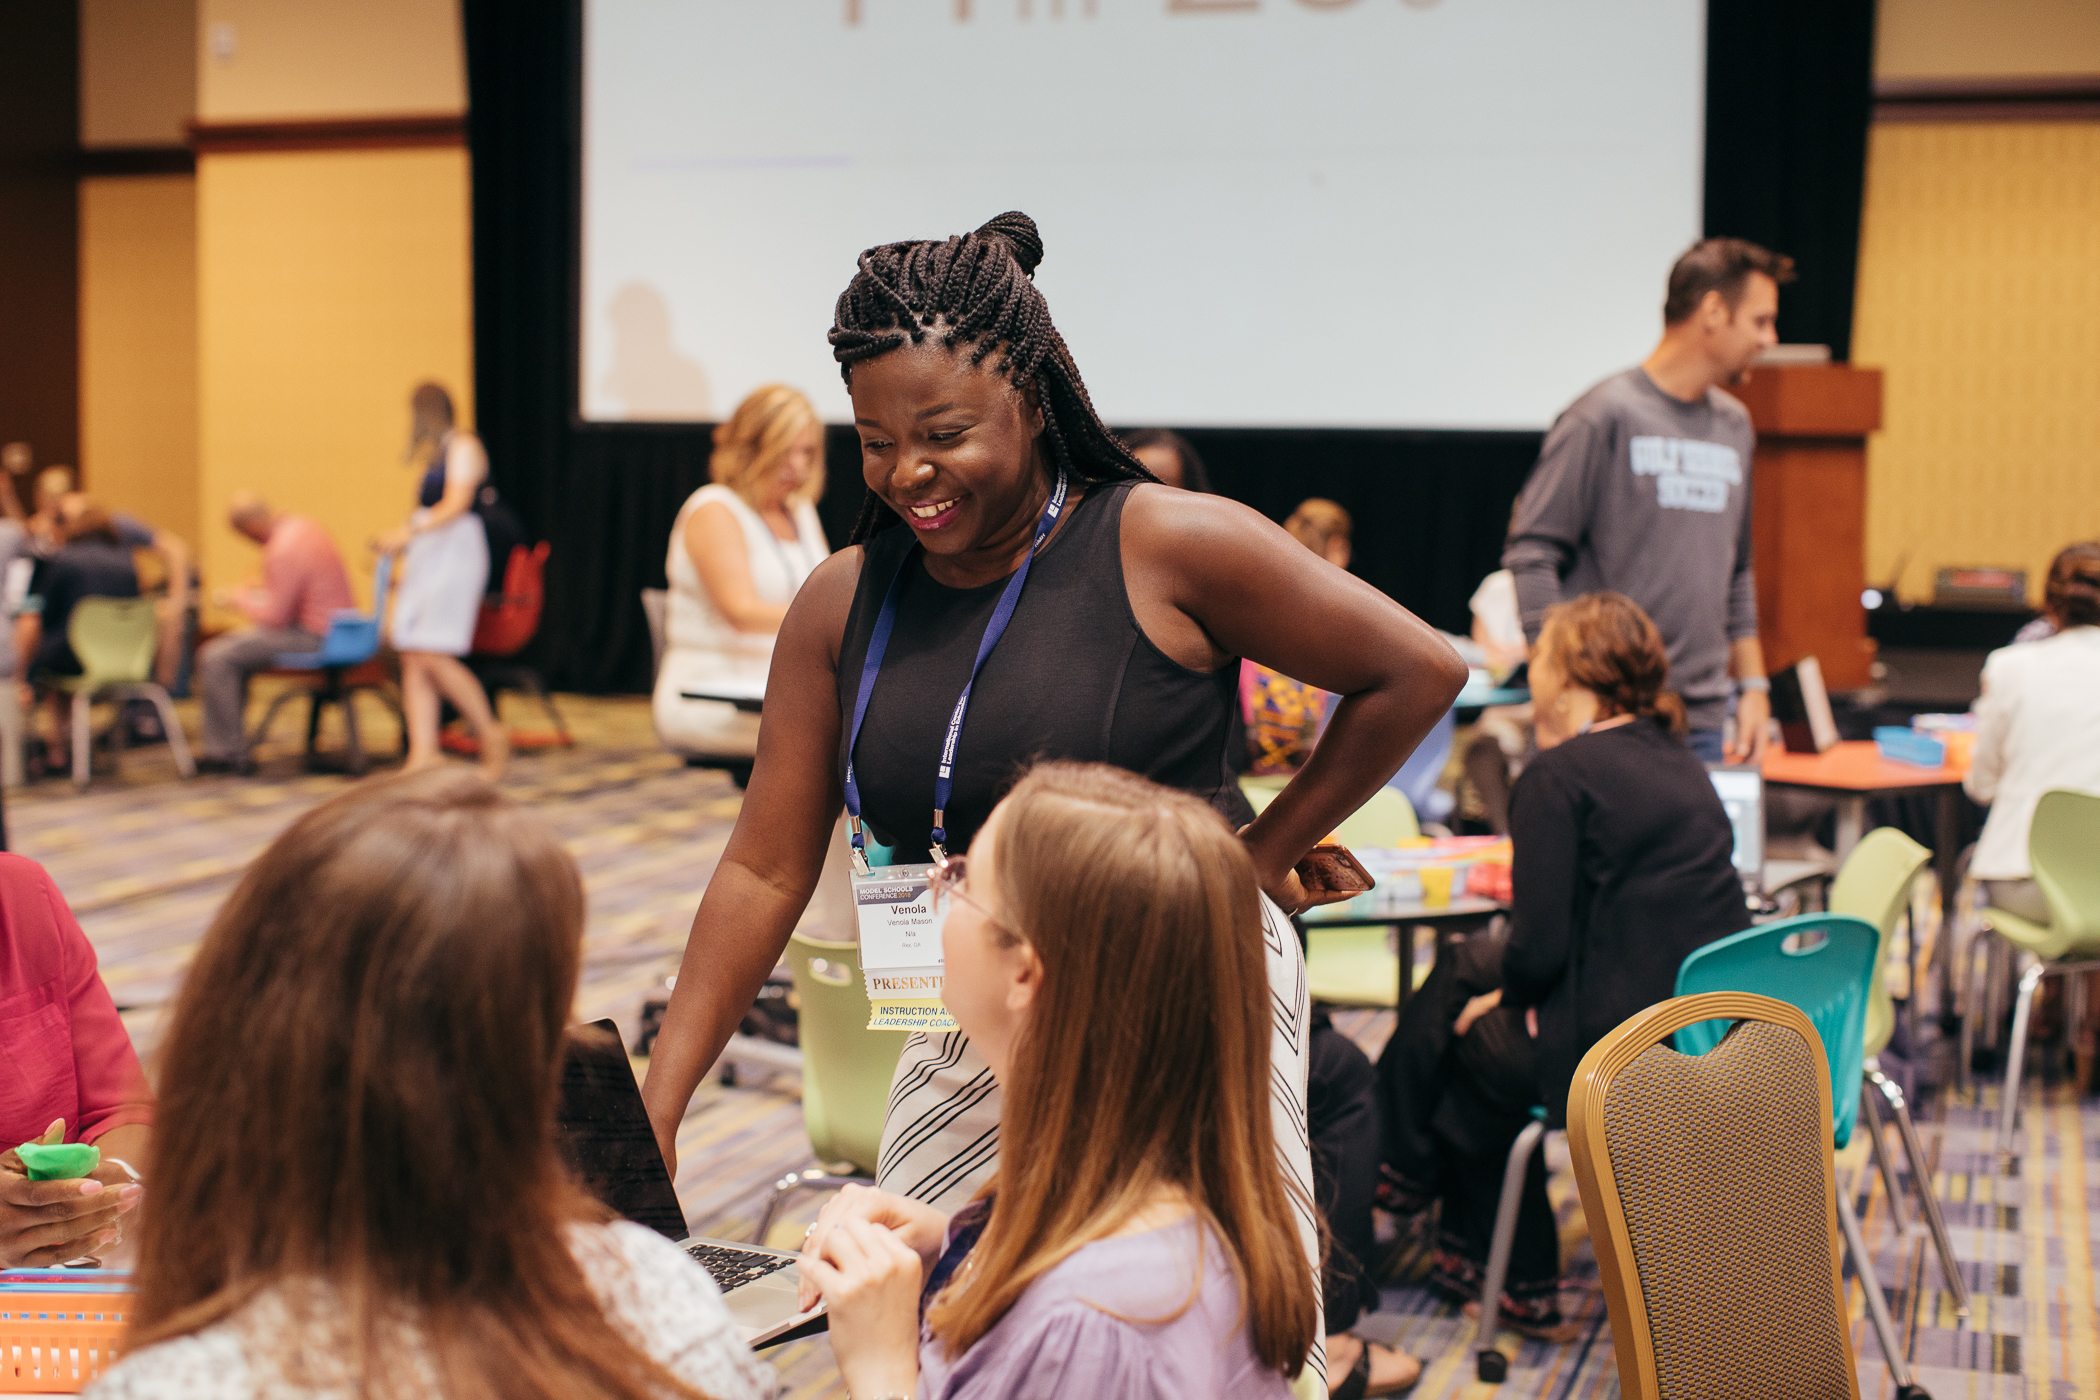 live event commercial photography brand storytelling for education florida conference photographer ©2018abigailbobophotography-83.jpg